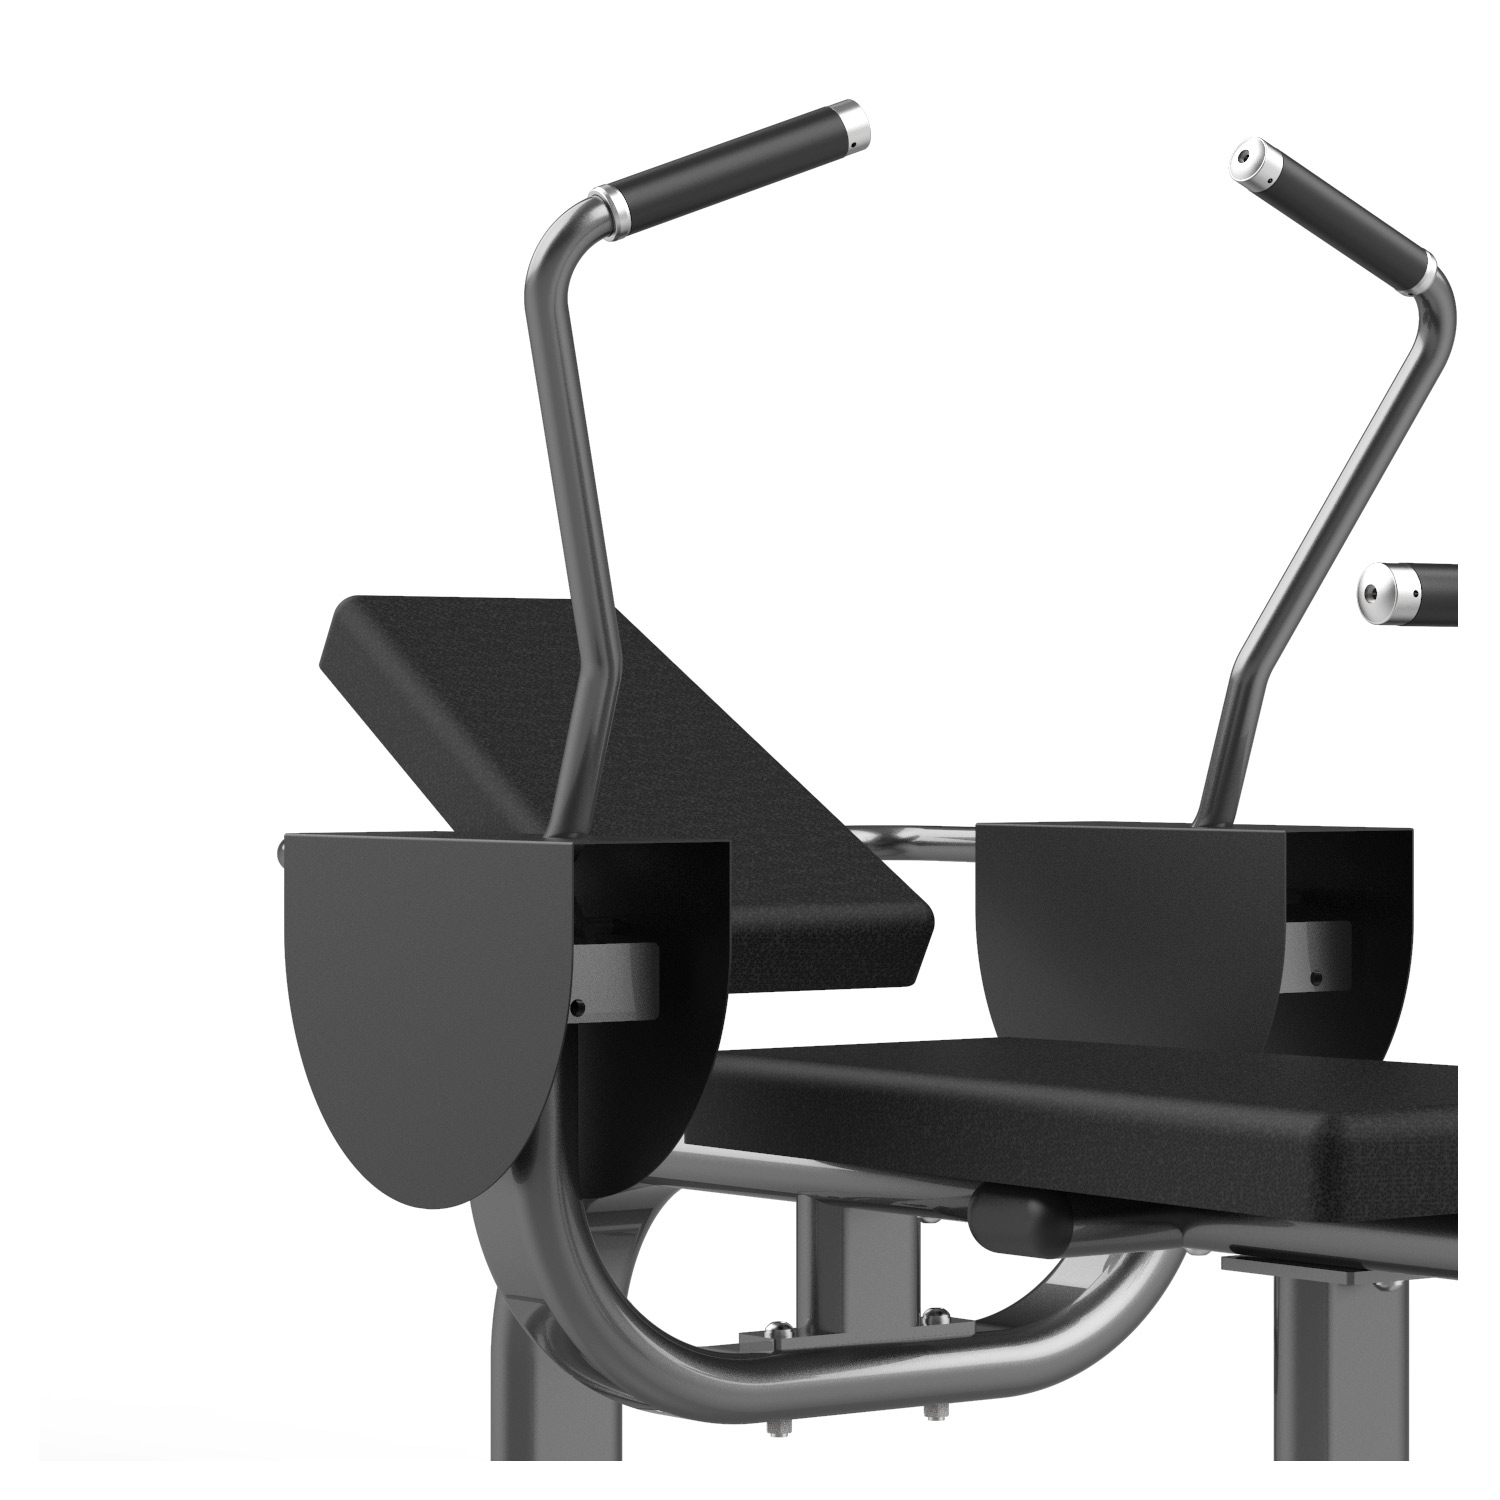 FW-1007 Assist Abdominal Bench